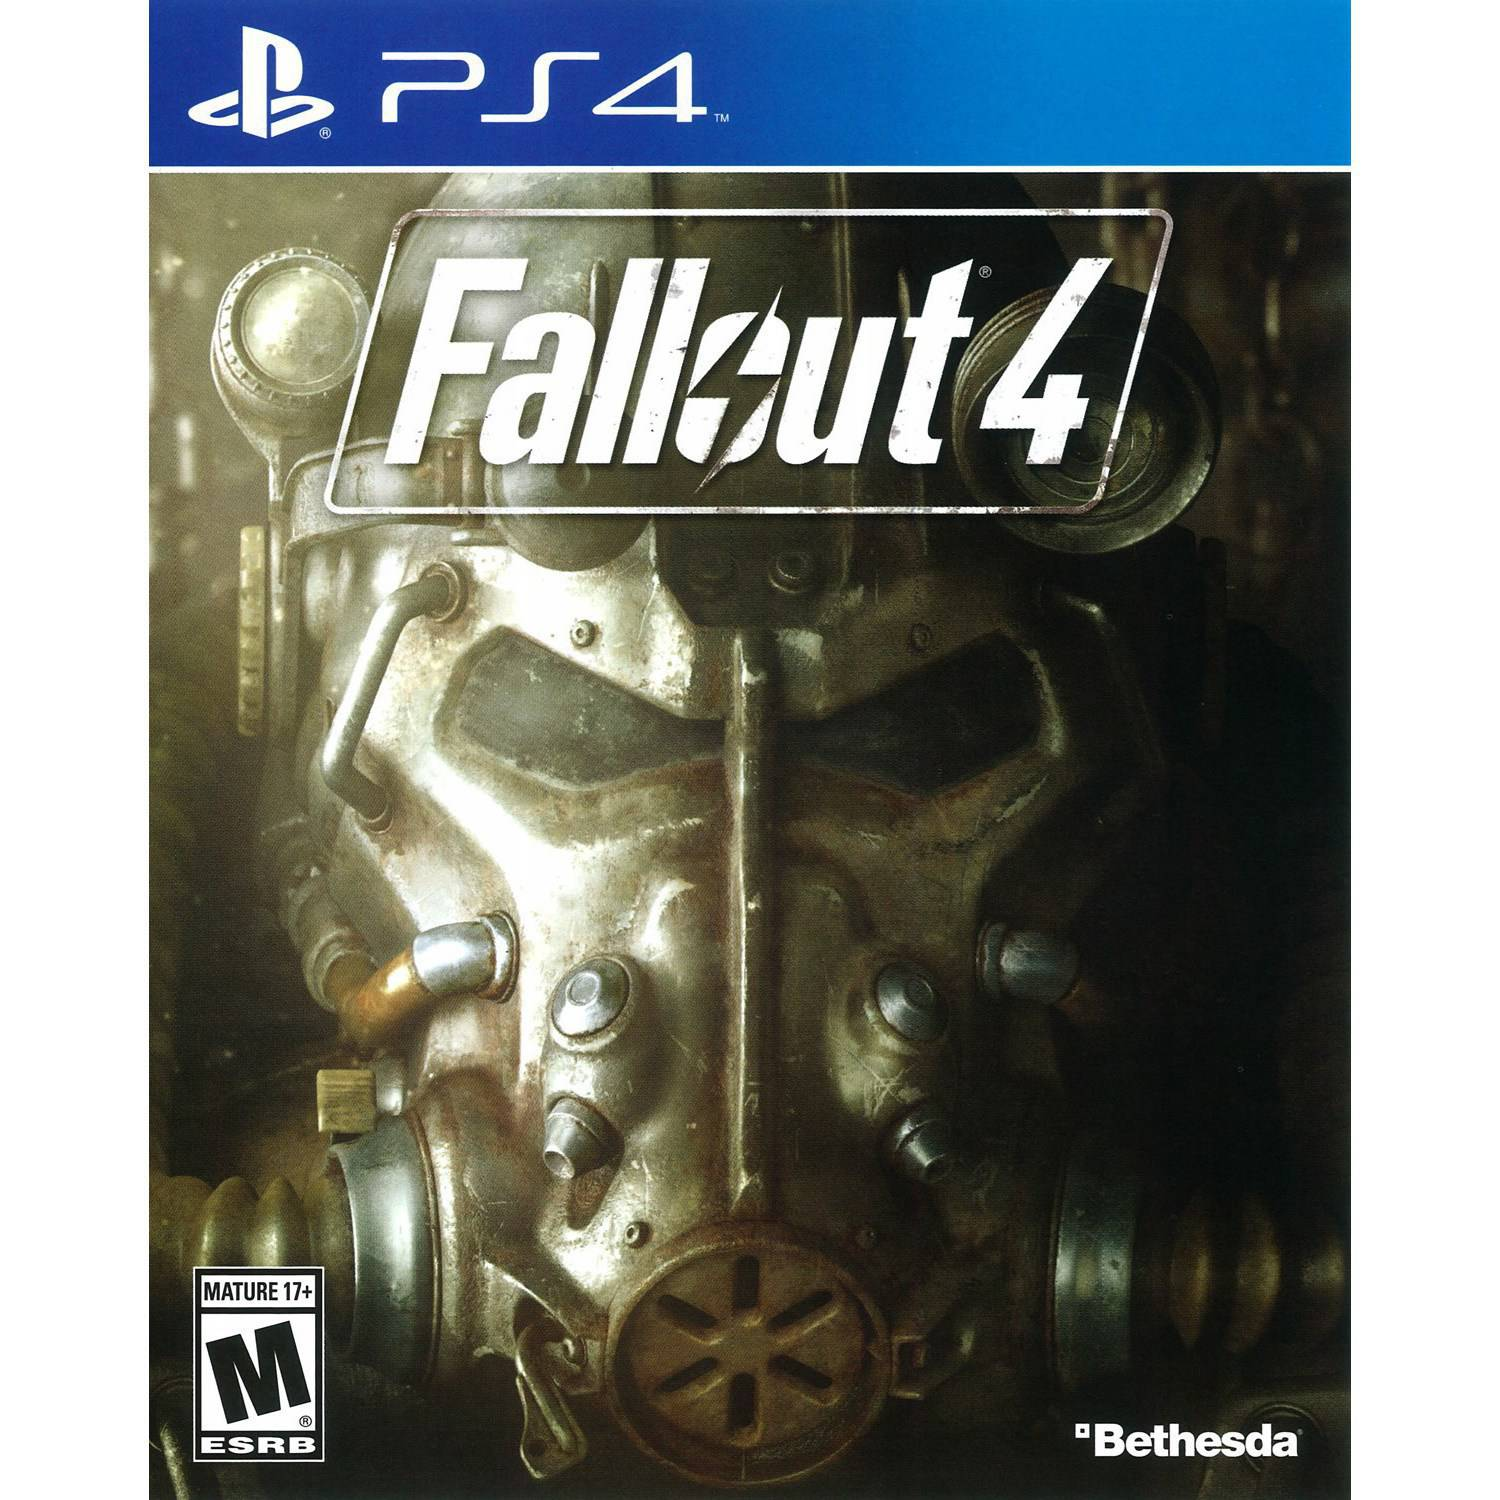 Fallout 4 (PS4) - Pre-Owned